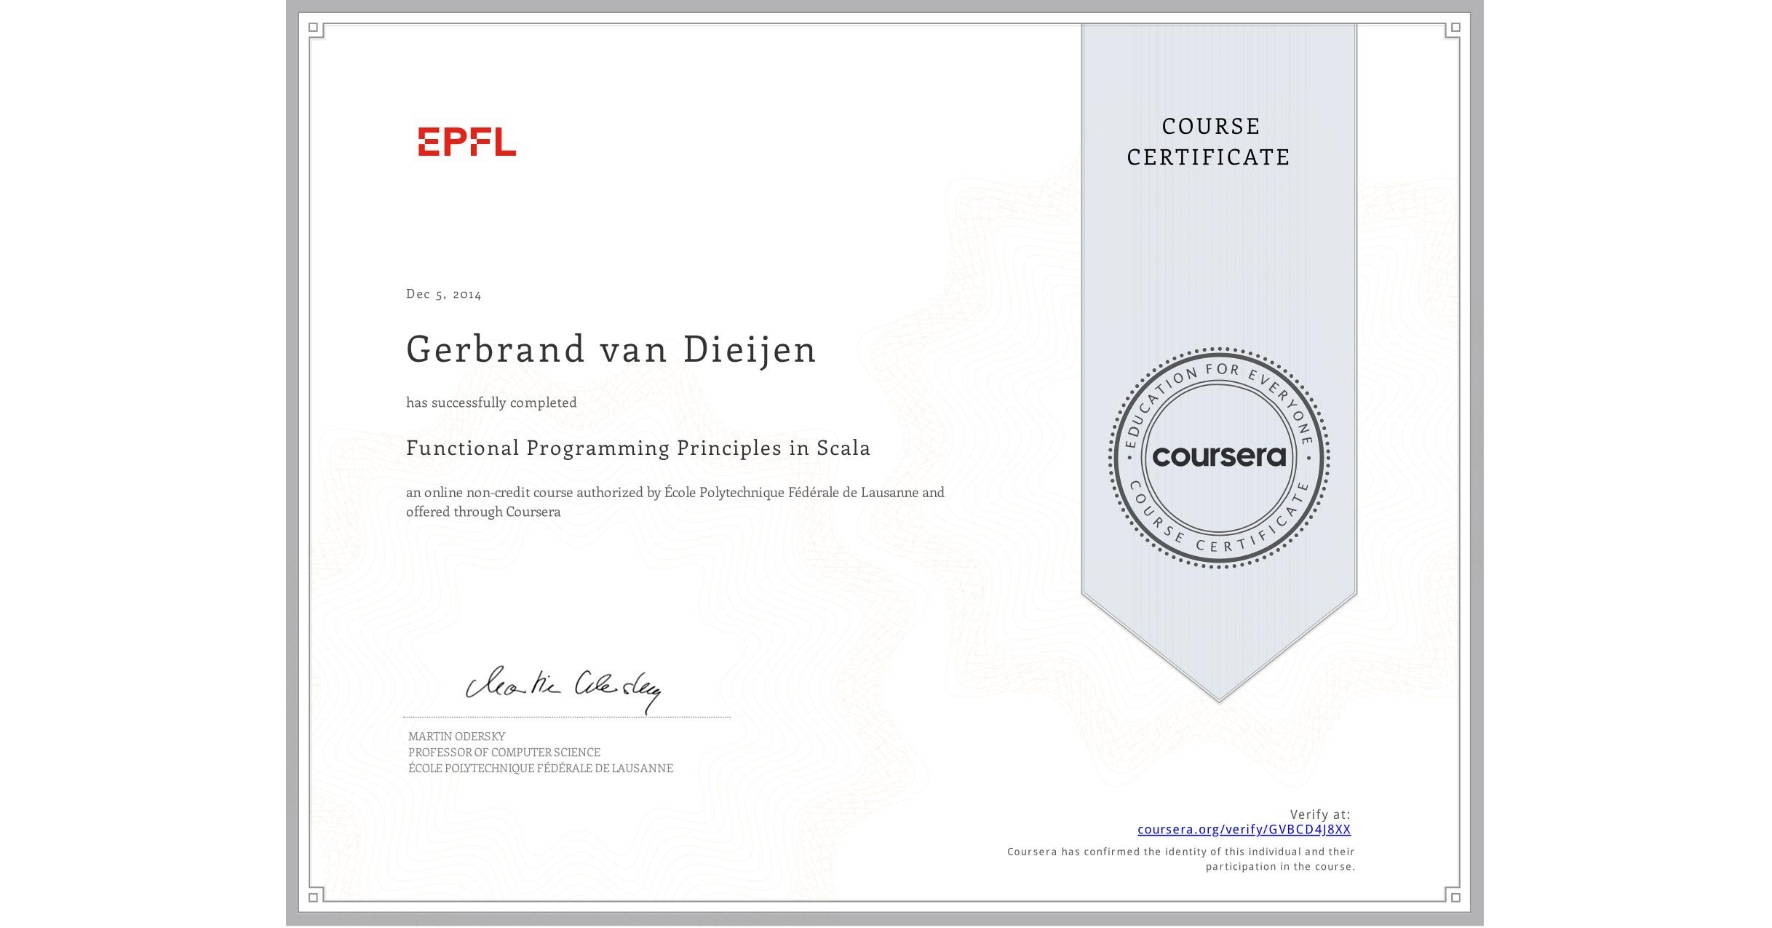 View certificate for Gerbrand van Dieijen, Functional Programming Principles in Scala, an online non-credit course authorized by École Polytechnique Fédérale de Lausanne and offered through Coursera